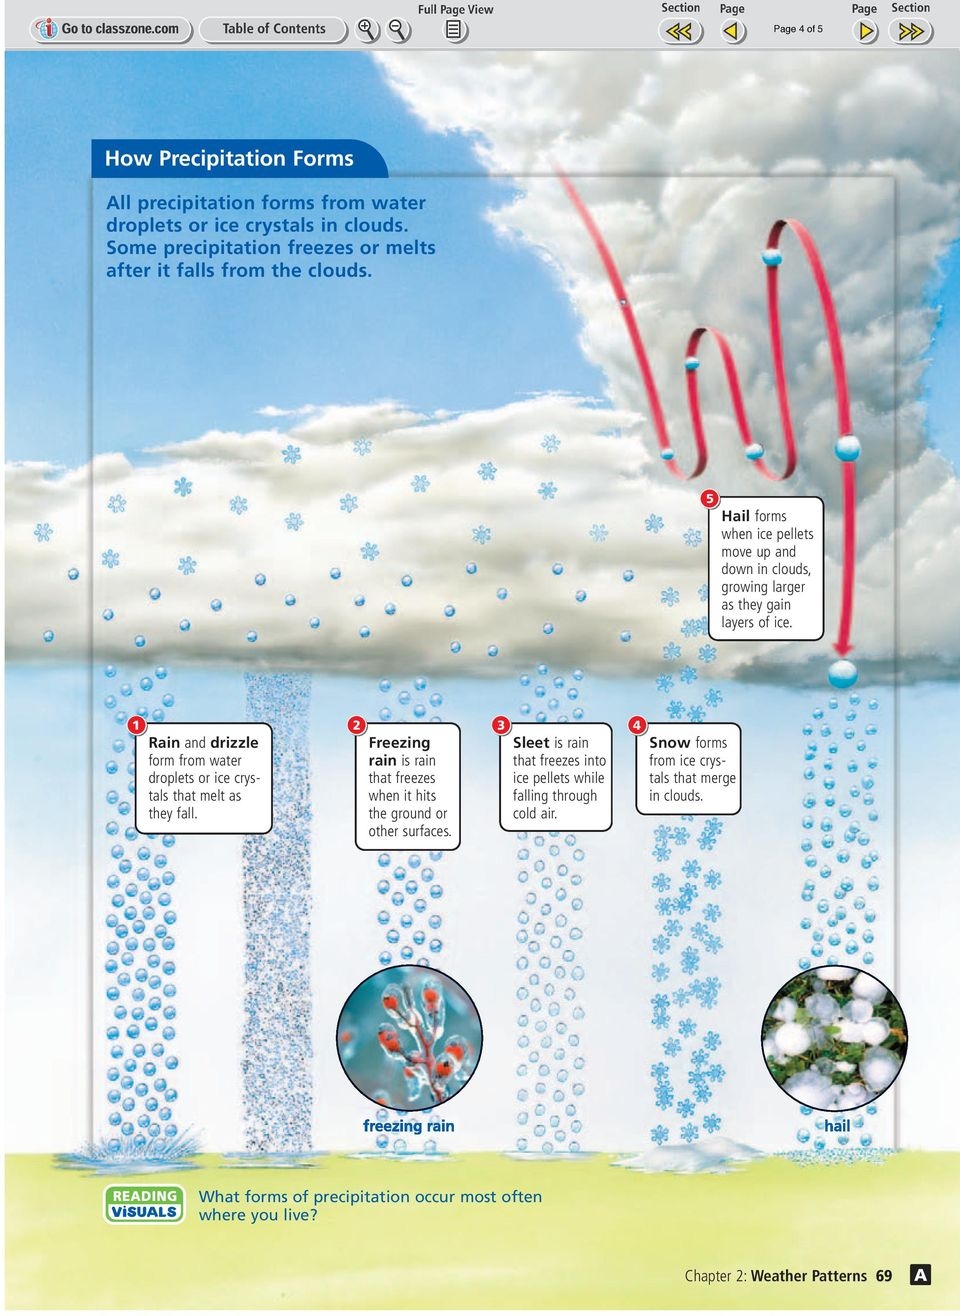 Rain and drizzle form from water droplets or ice crystals that melt as they fall. Freezing rain is rain that freezes when it hits the ground or other surfaces.